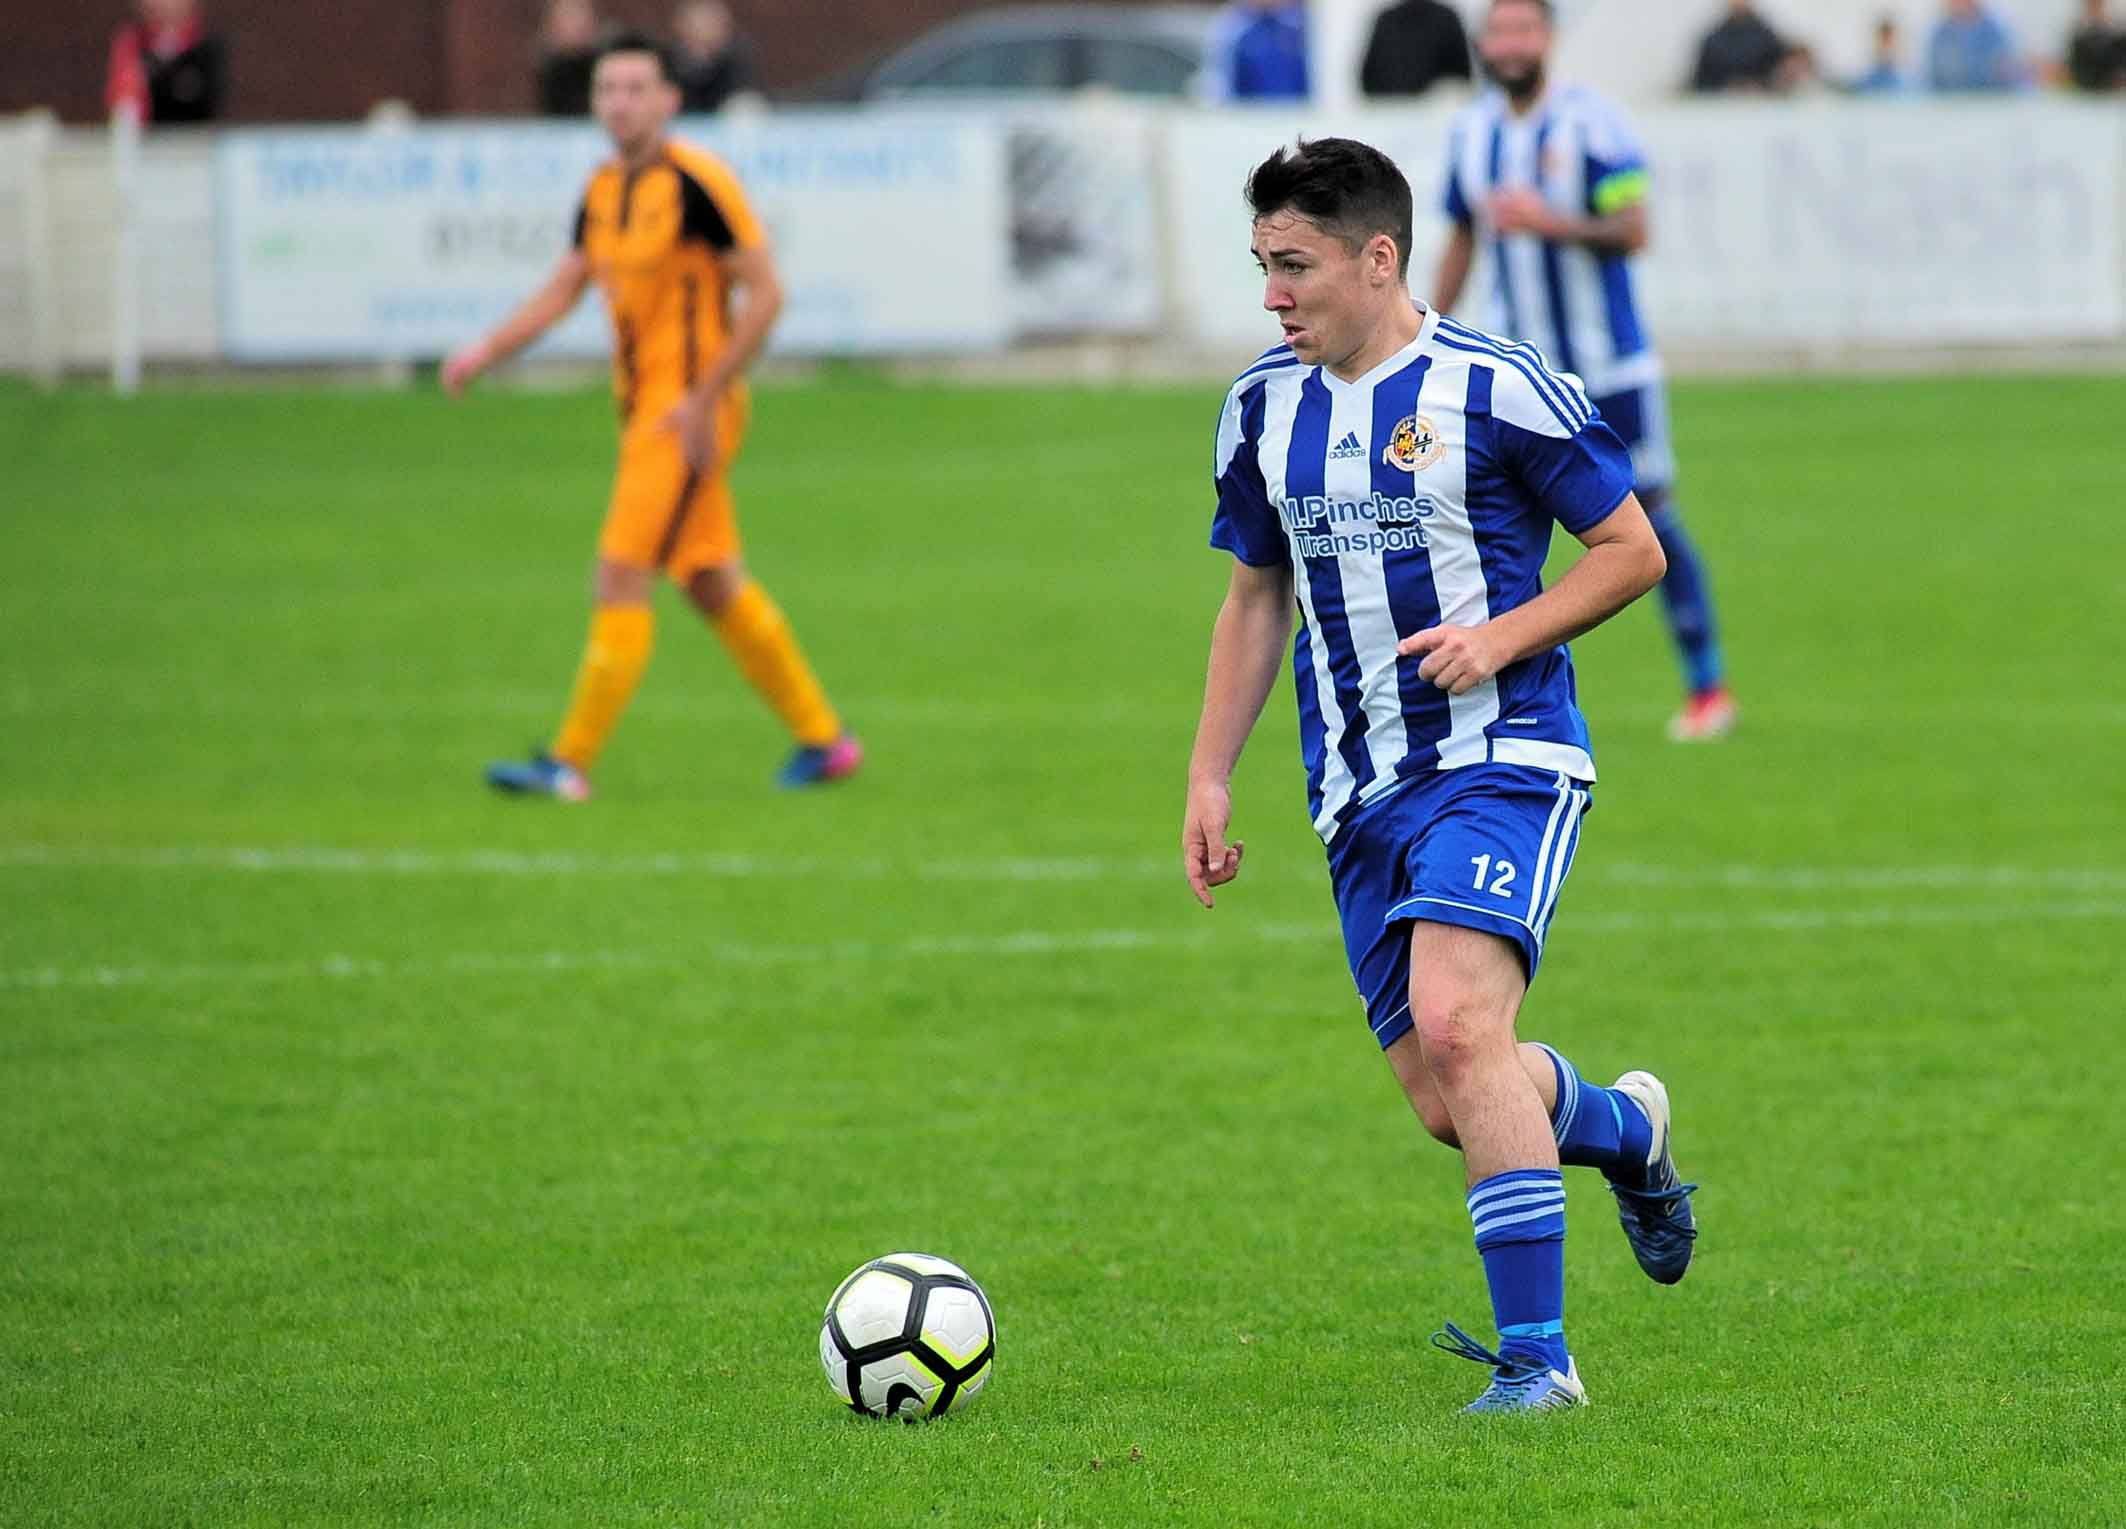 James Baldwin put Worcester City in front at Sporting Khalsa. Picture: JONATHAN BARRY